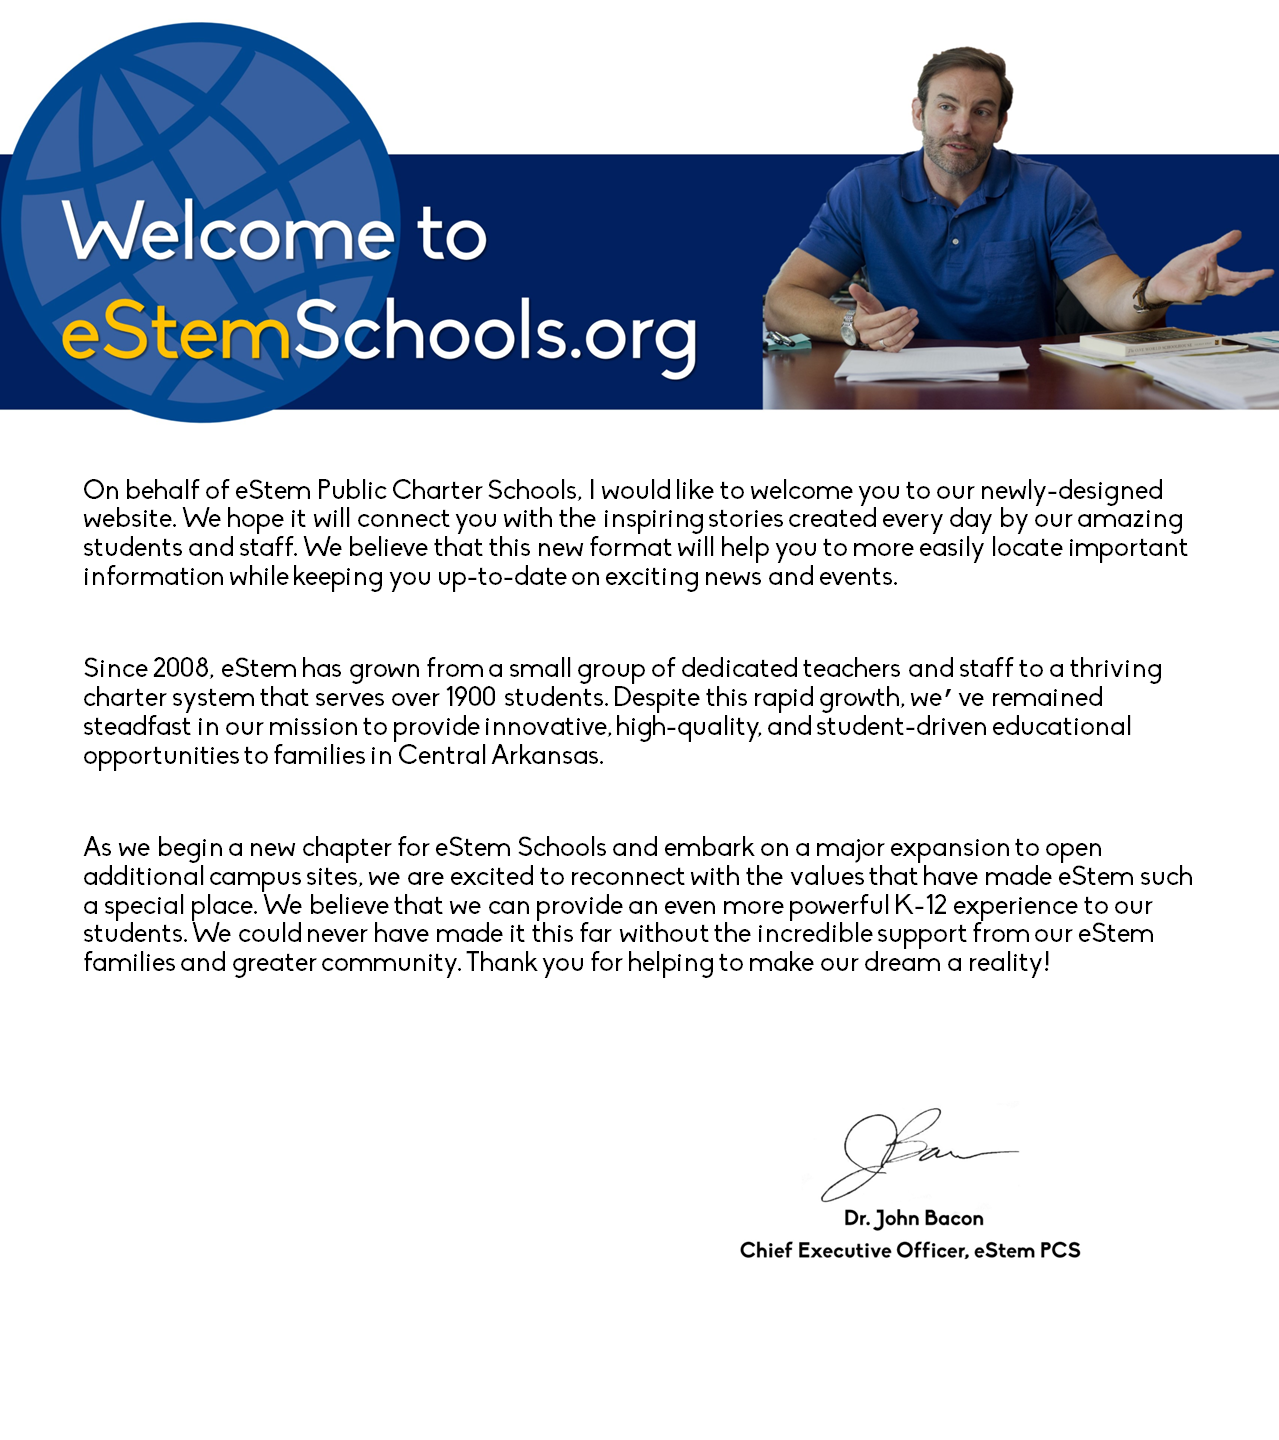 Message from CEO: Dr. John Bacon